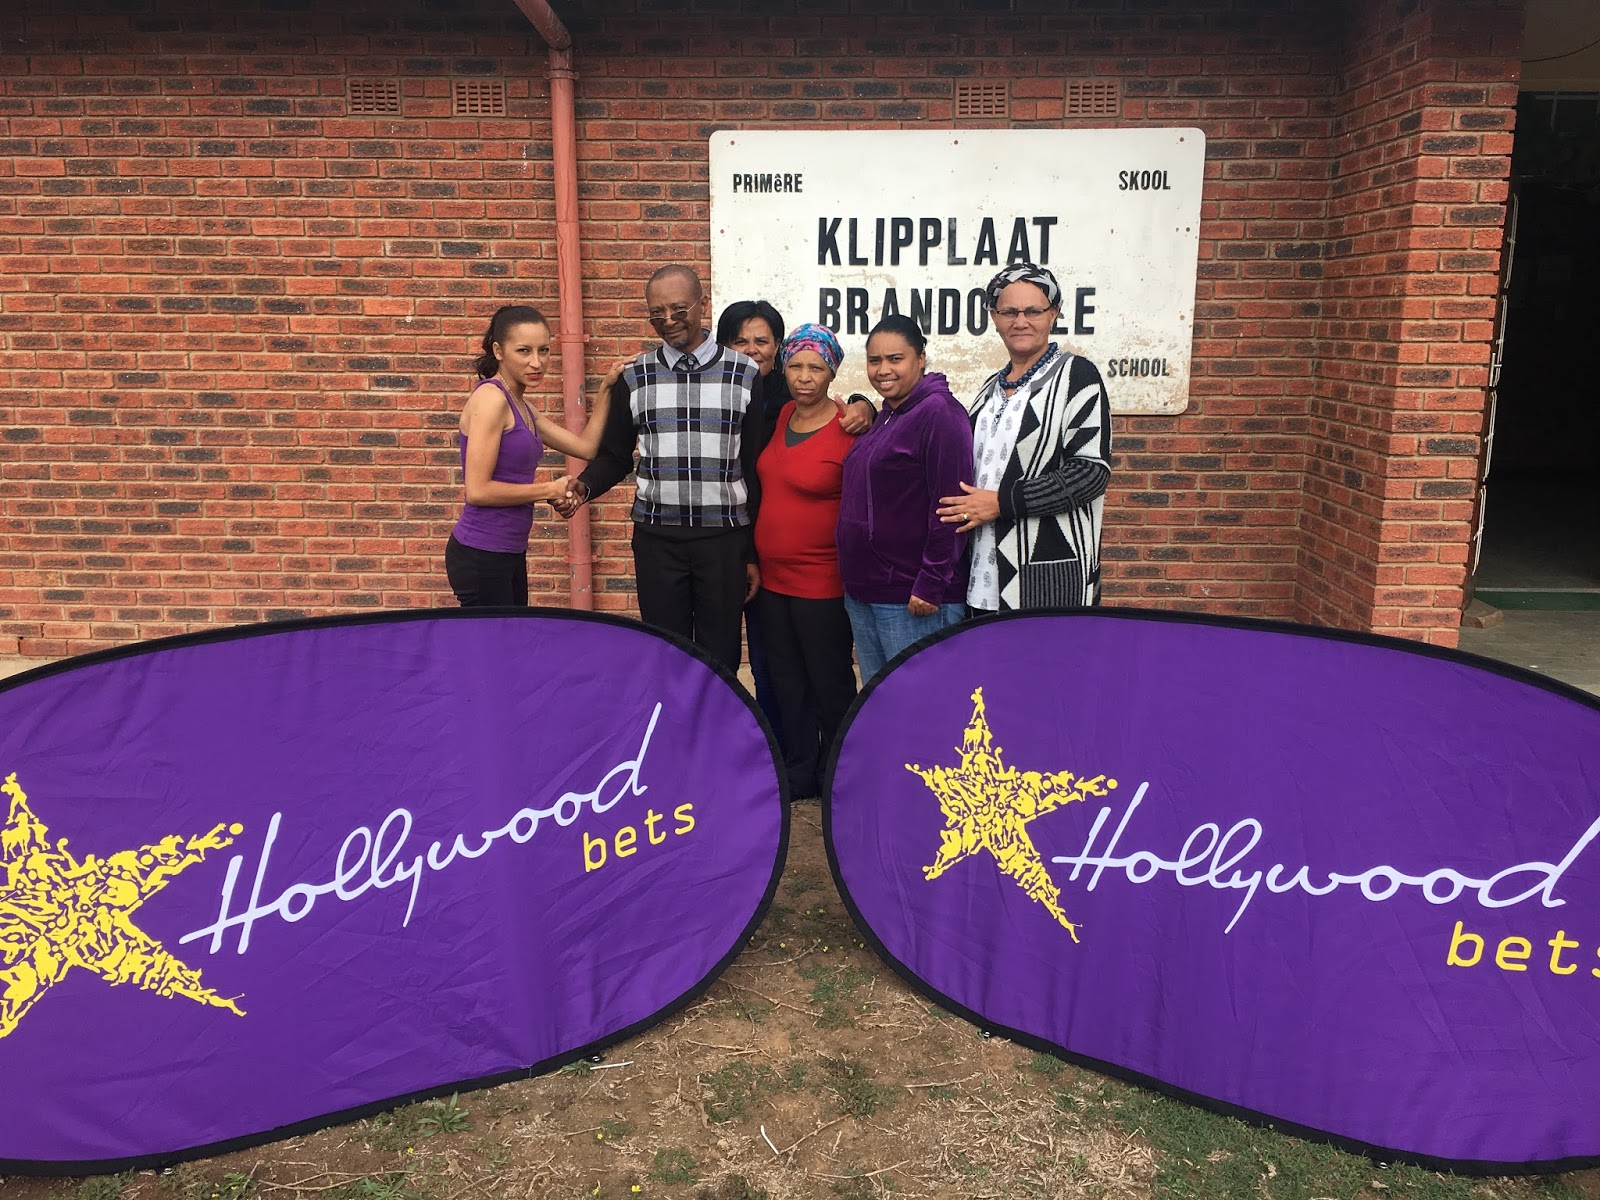 Brandovale Primary School is able to re-open their library thanks to a donation from Hollywoodbets Jeffreys Bay